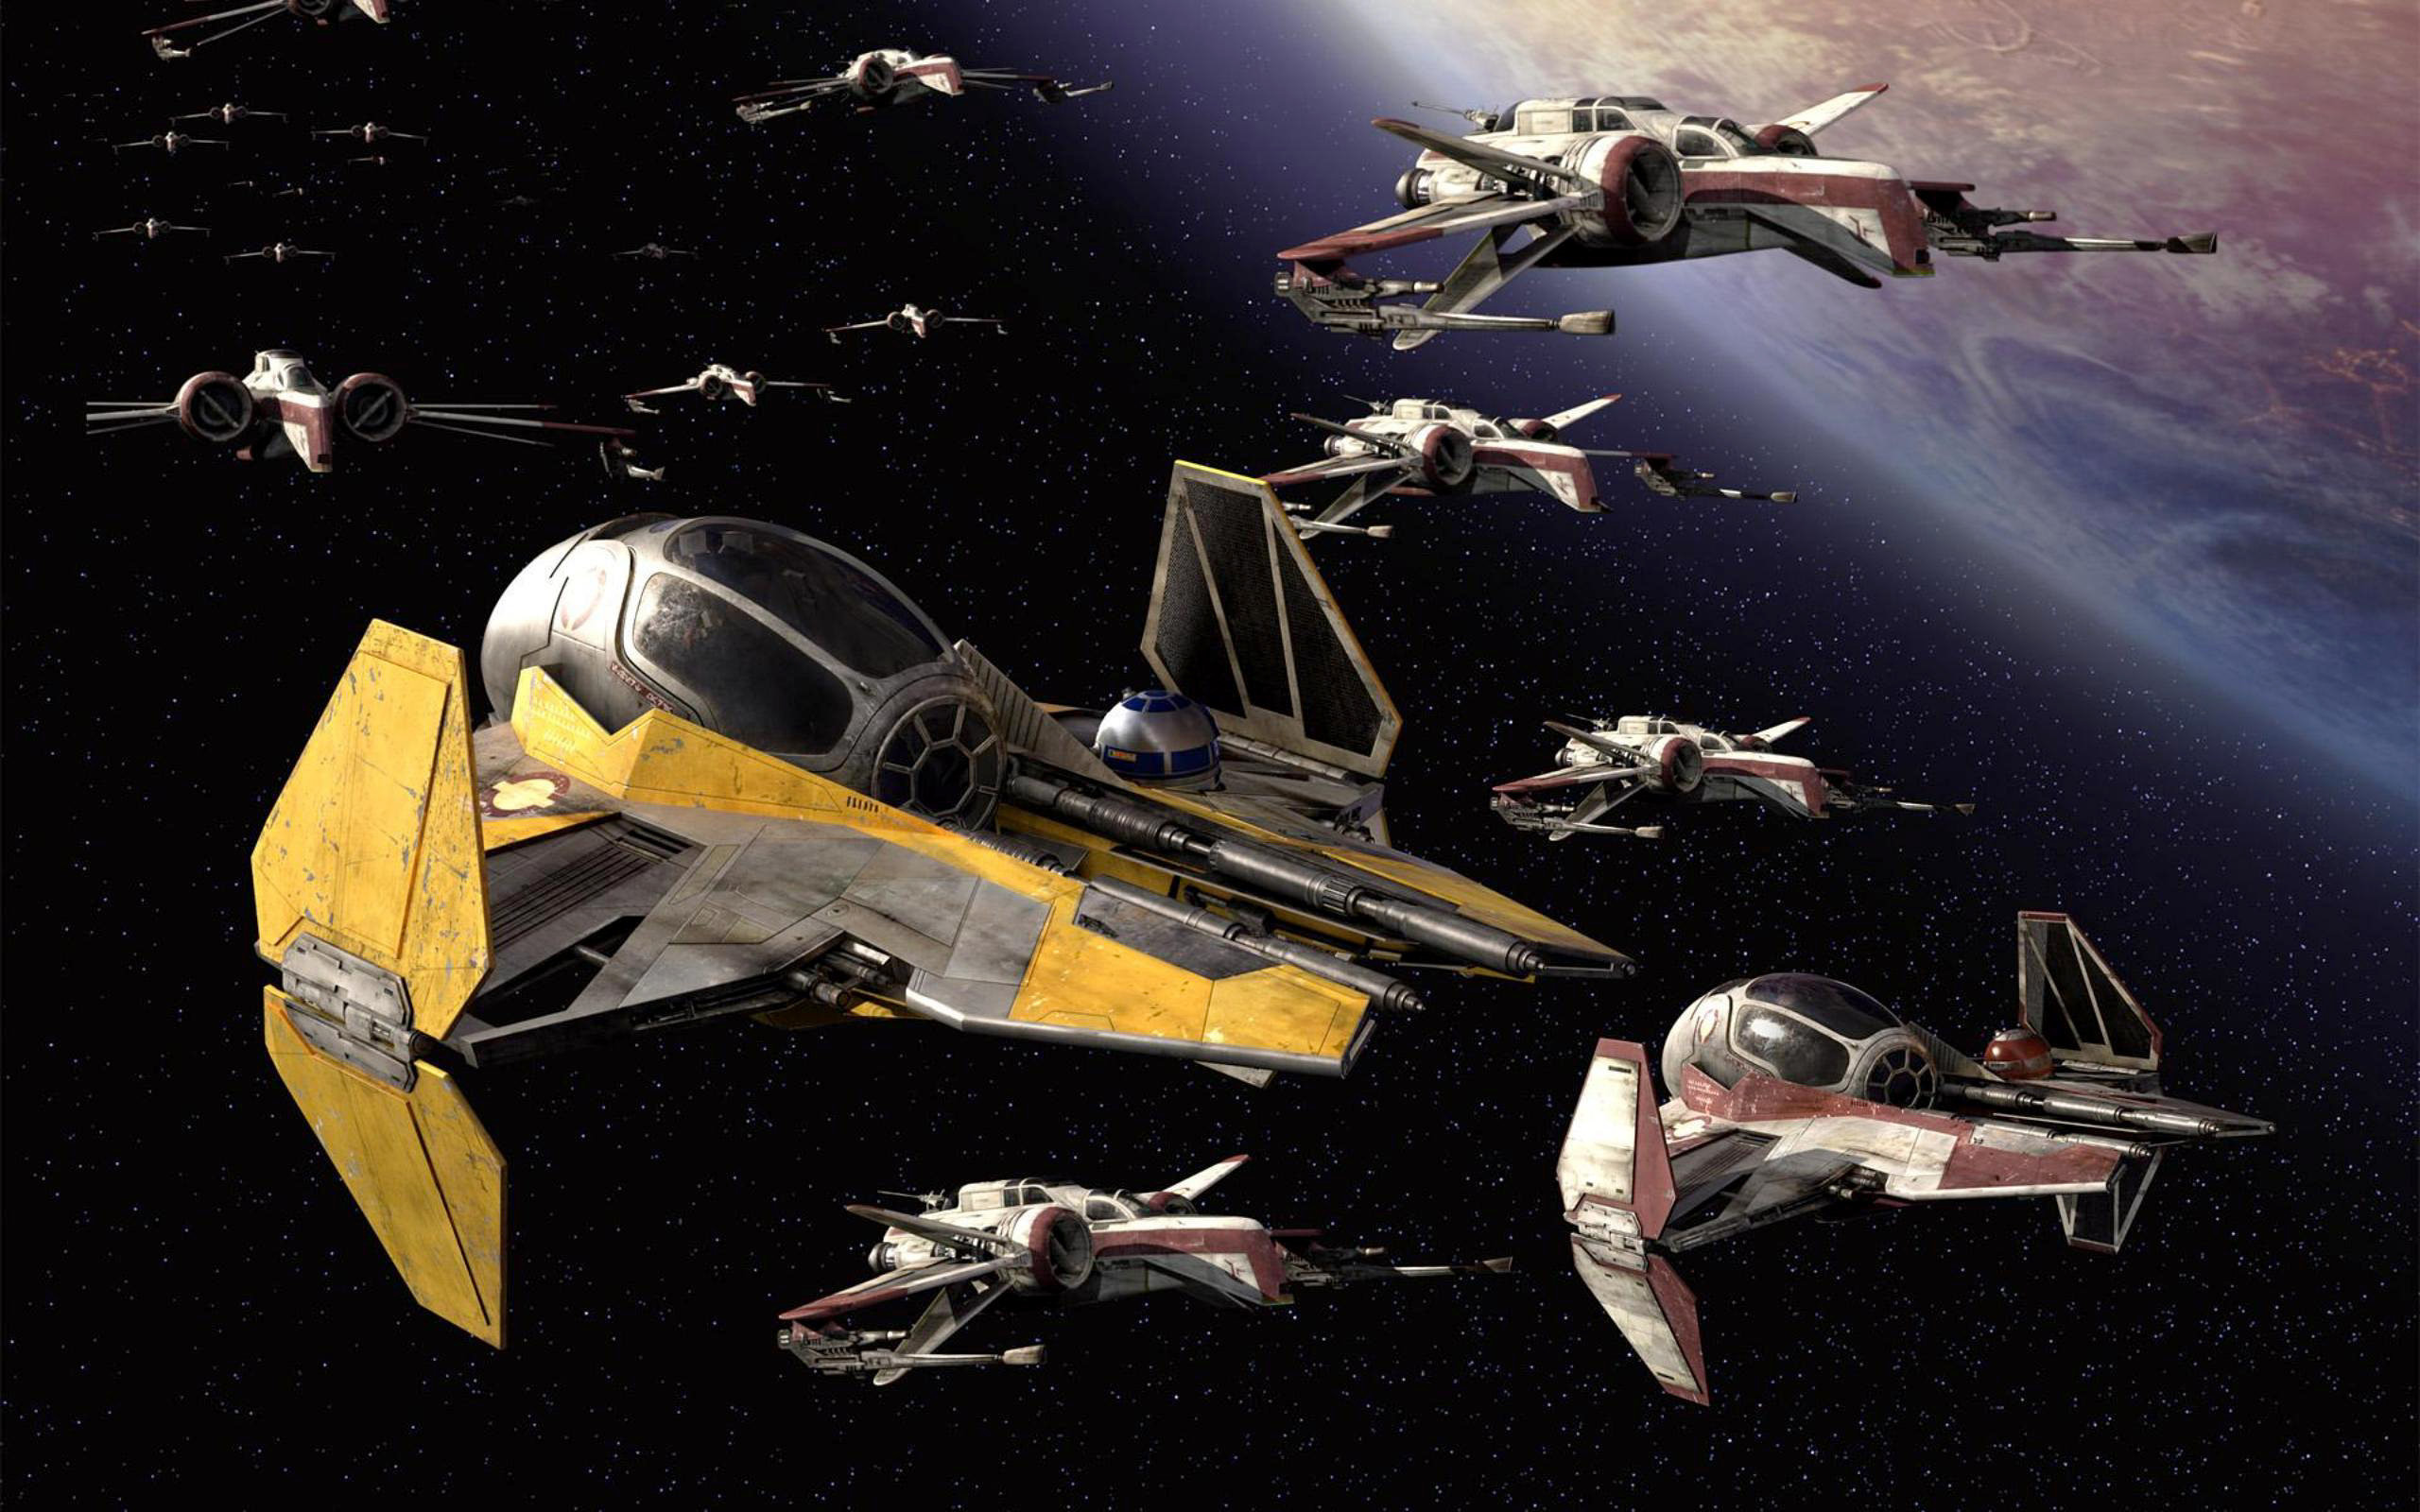 2560x1600 Star Wars Ships Desktop Background. Download  ...